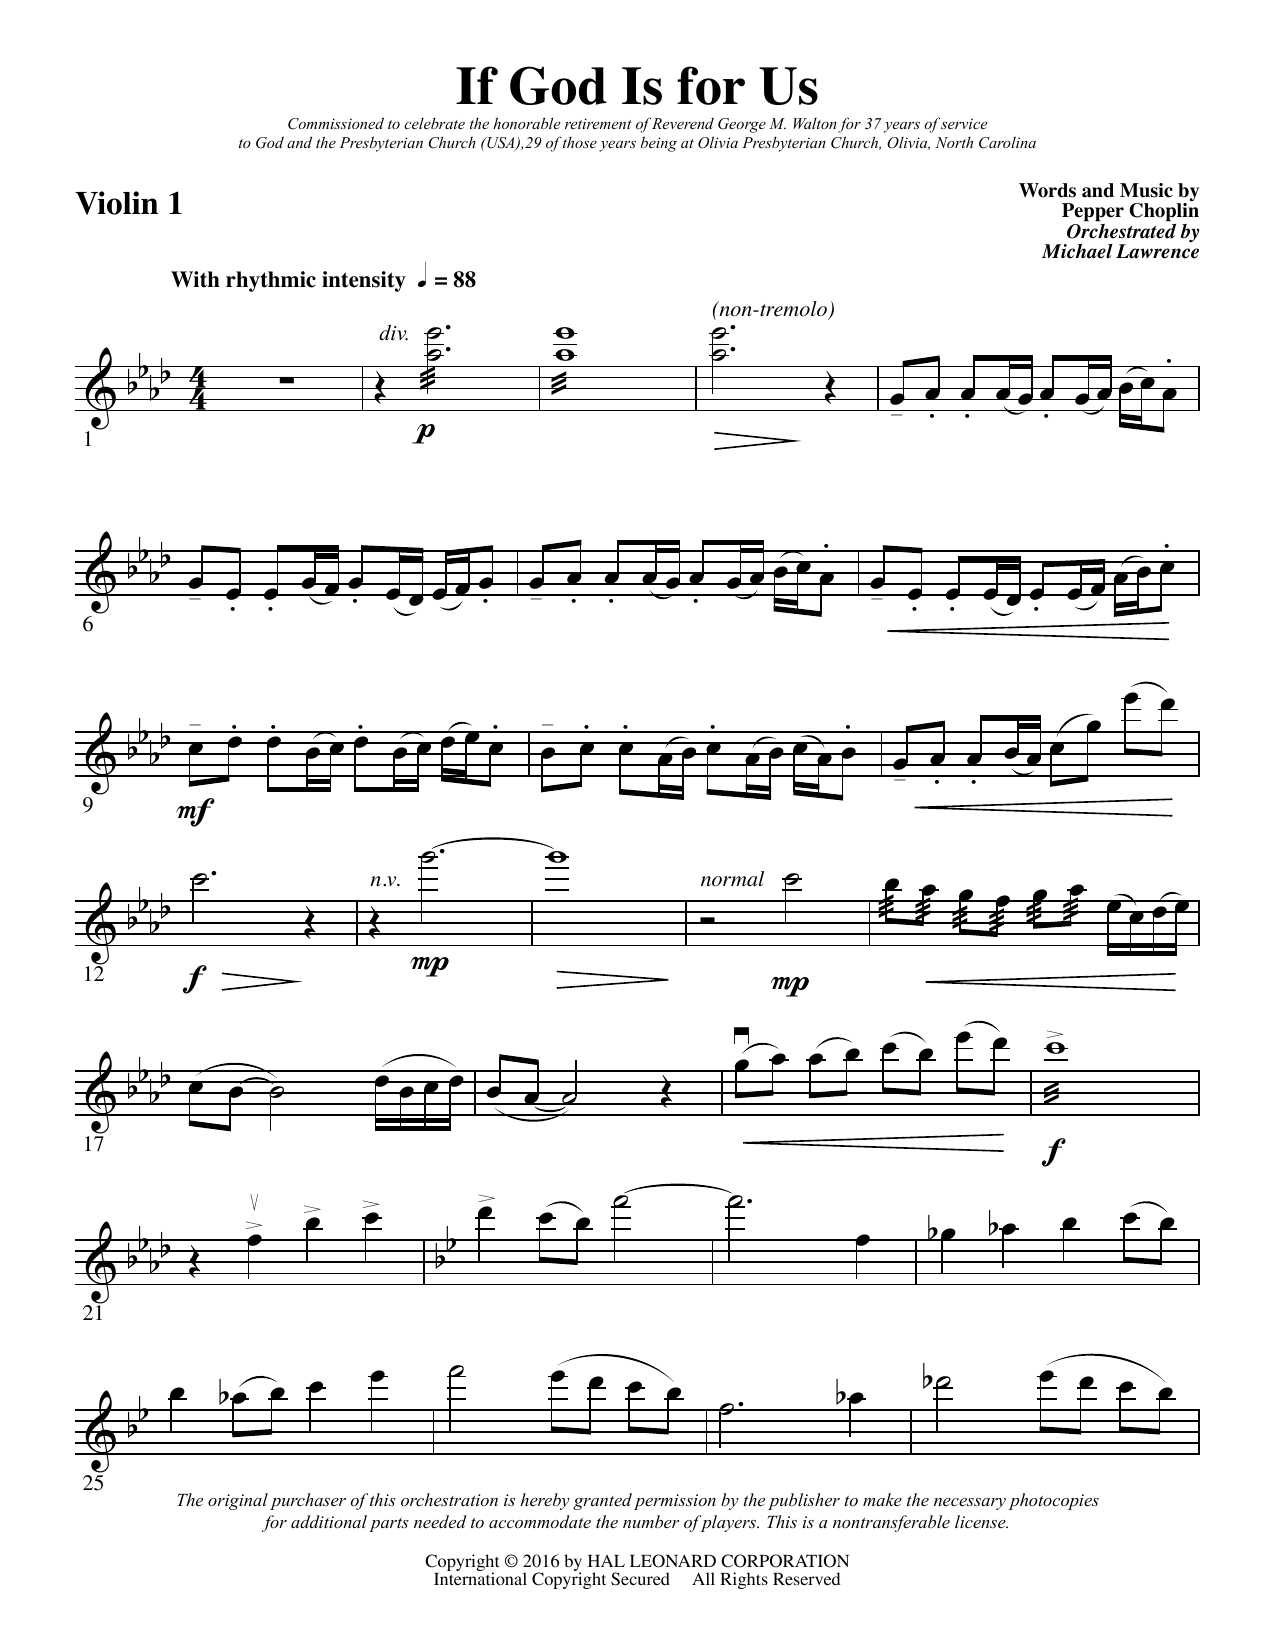 If God Is for Us - Violin 1 Sheet Music